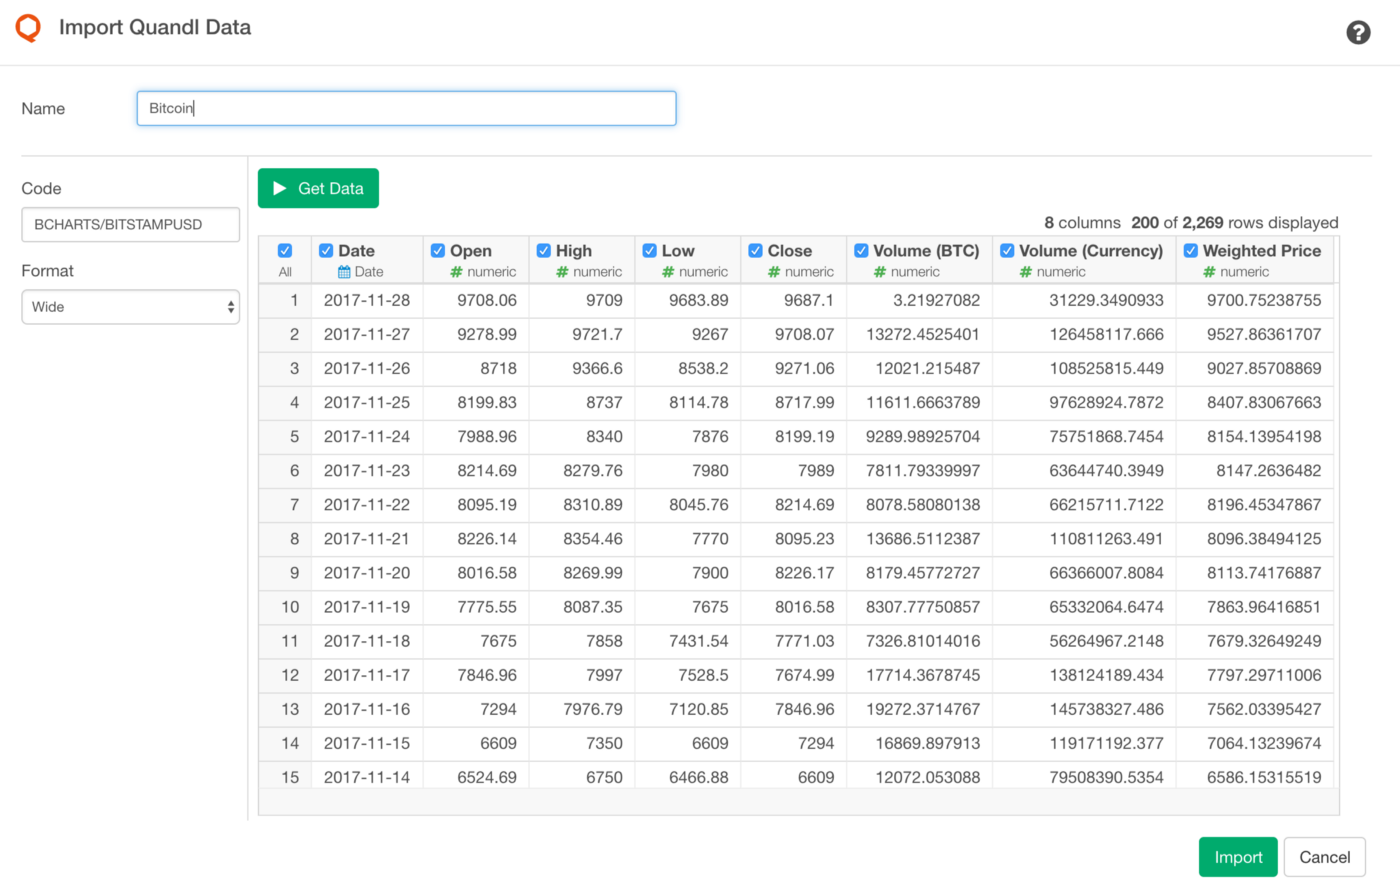 Getting Bitcoin Data and Visualizing in 3 Steps - learn data science